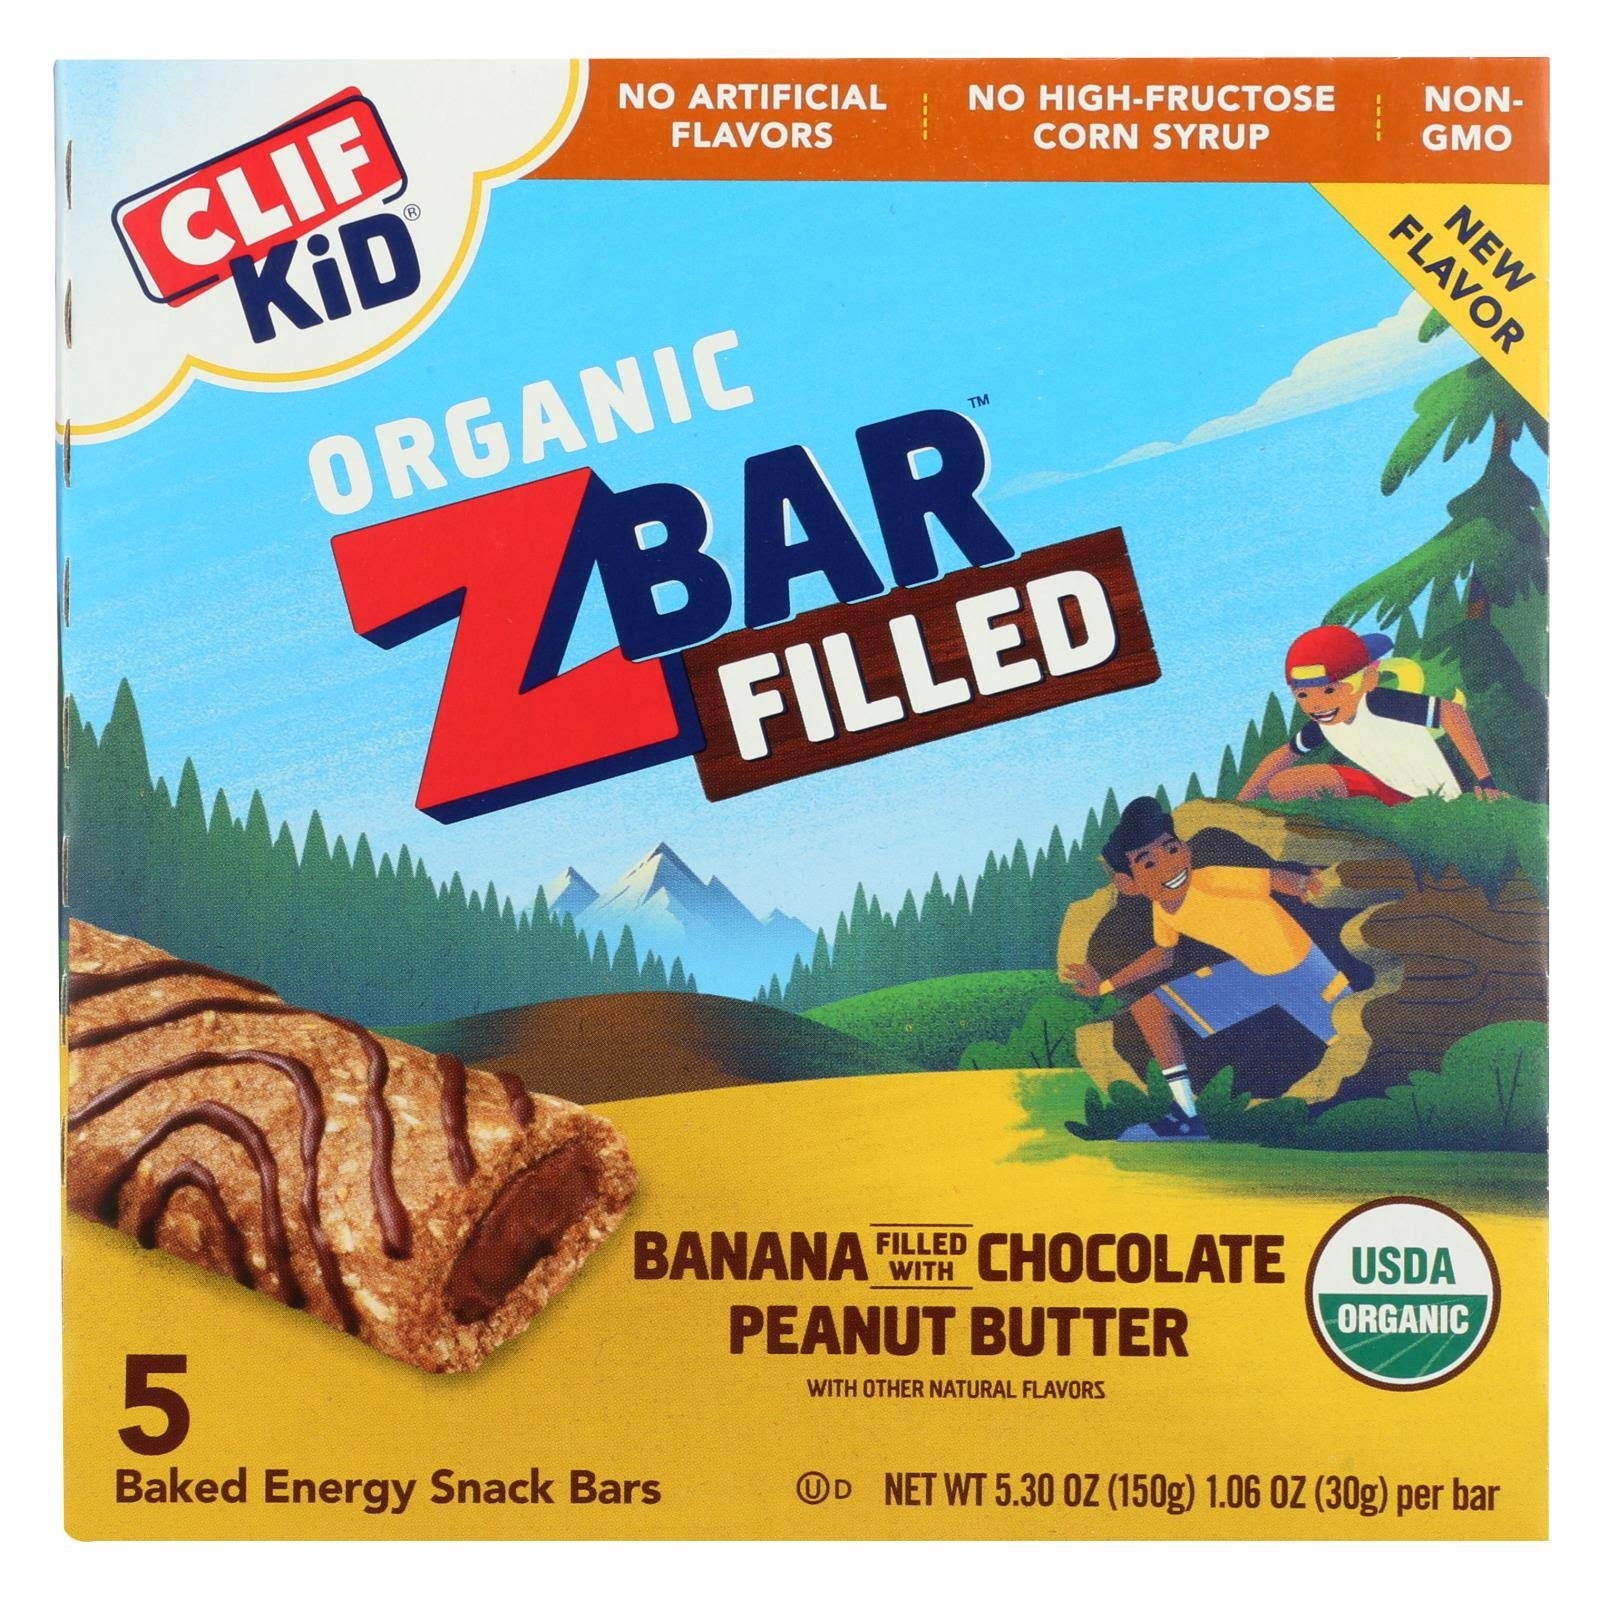 Clif Kid Zbar Filled Baked Energy Snack - Banana with Chocolate Peanut Butter, 30g, x5